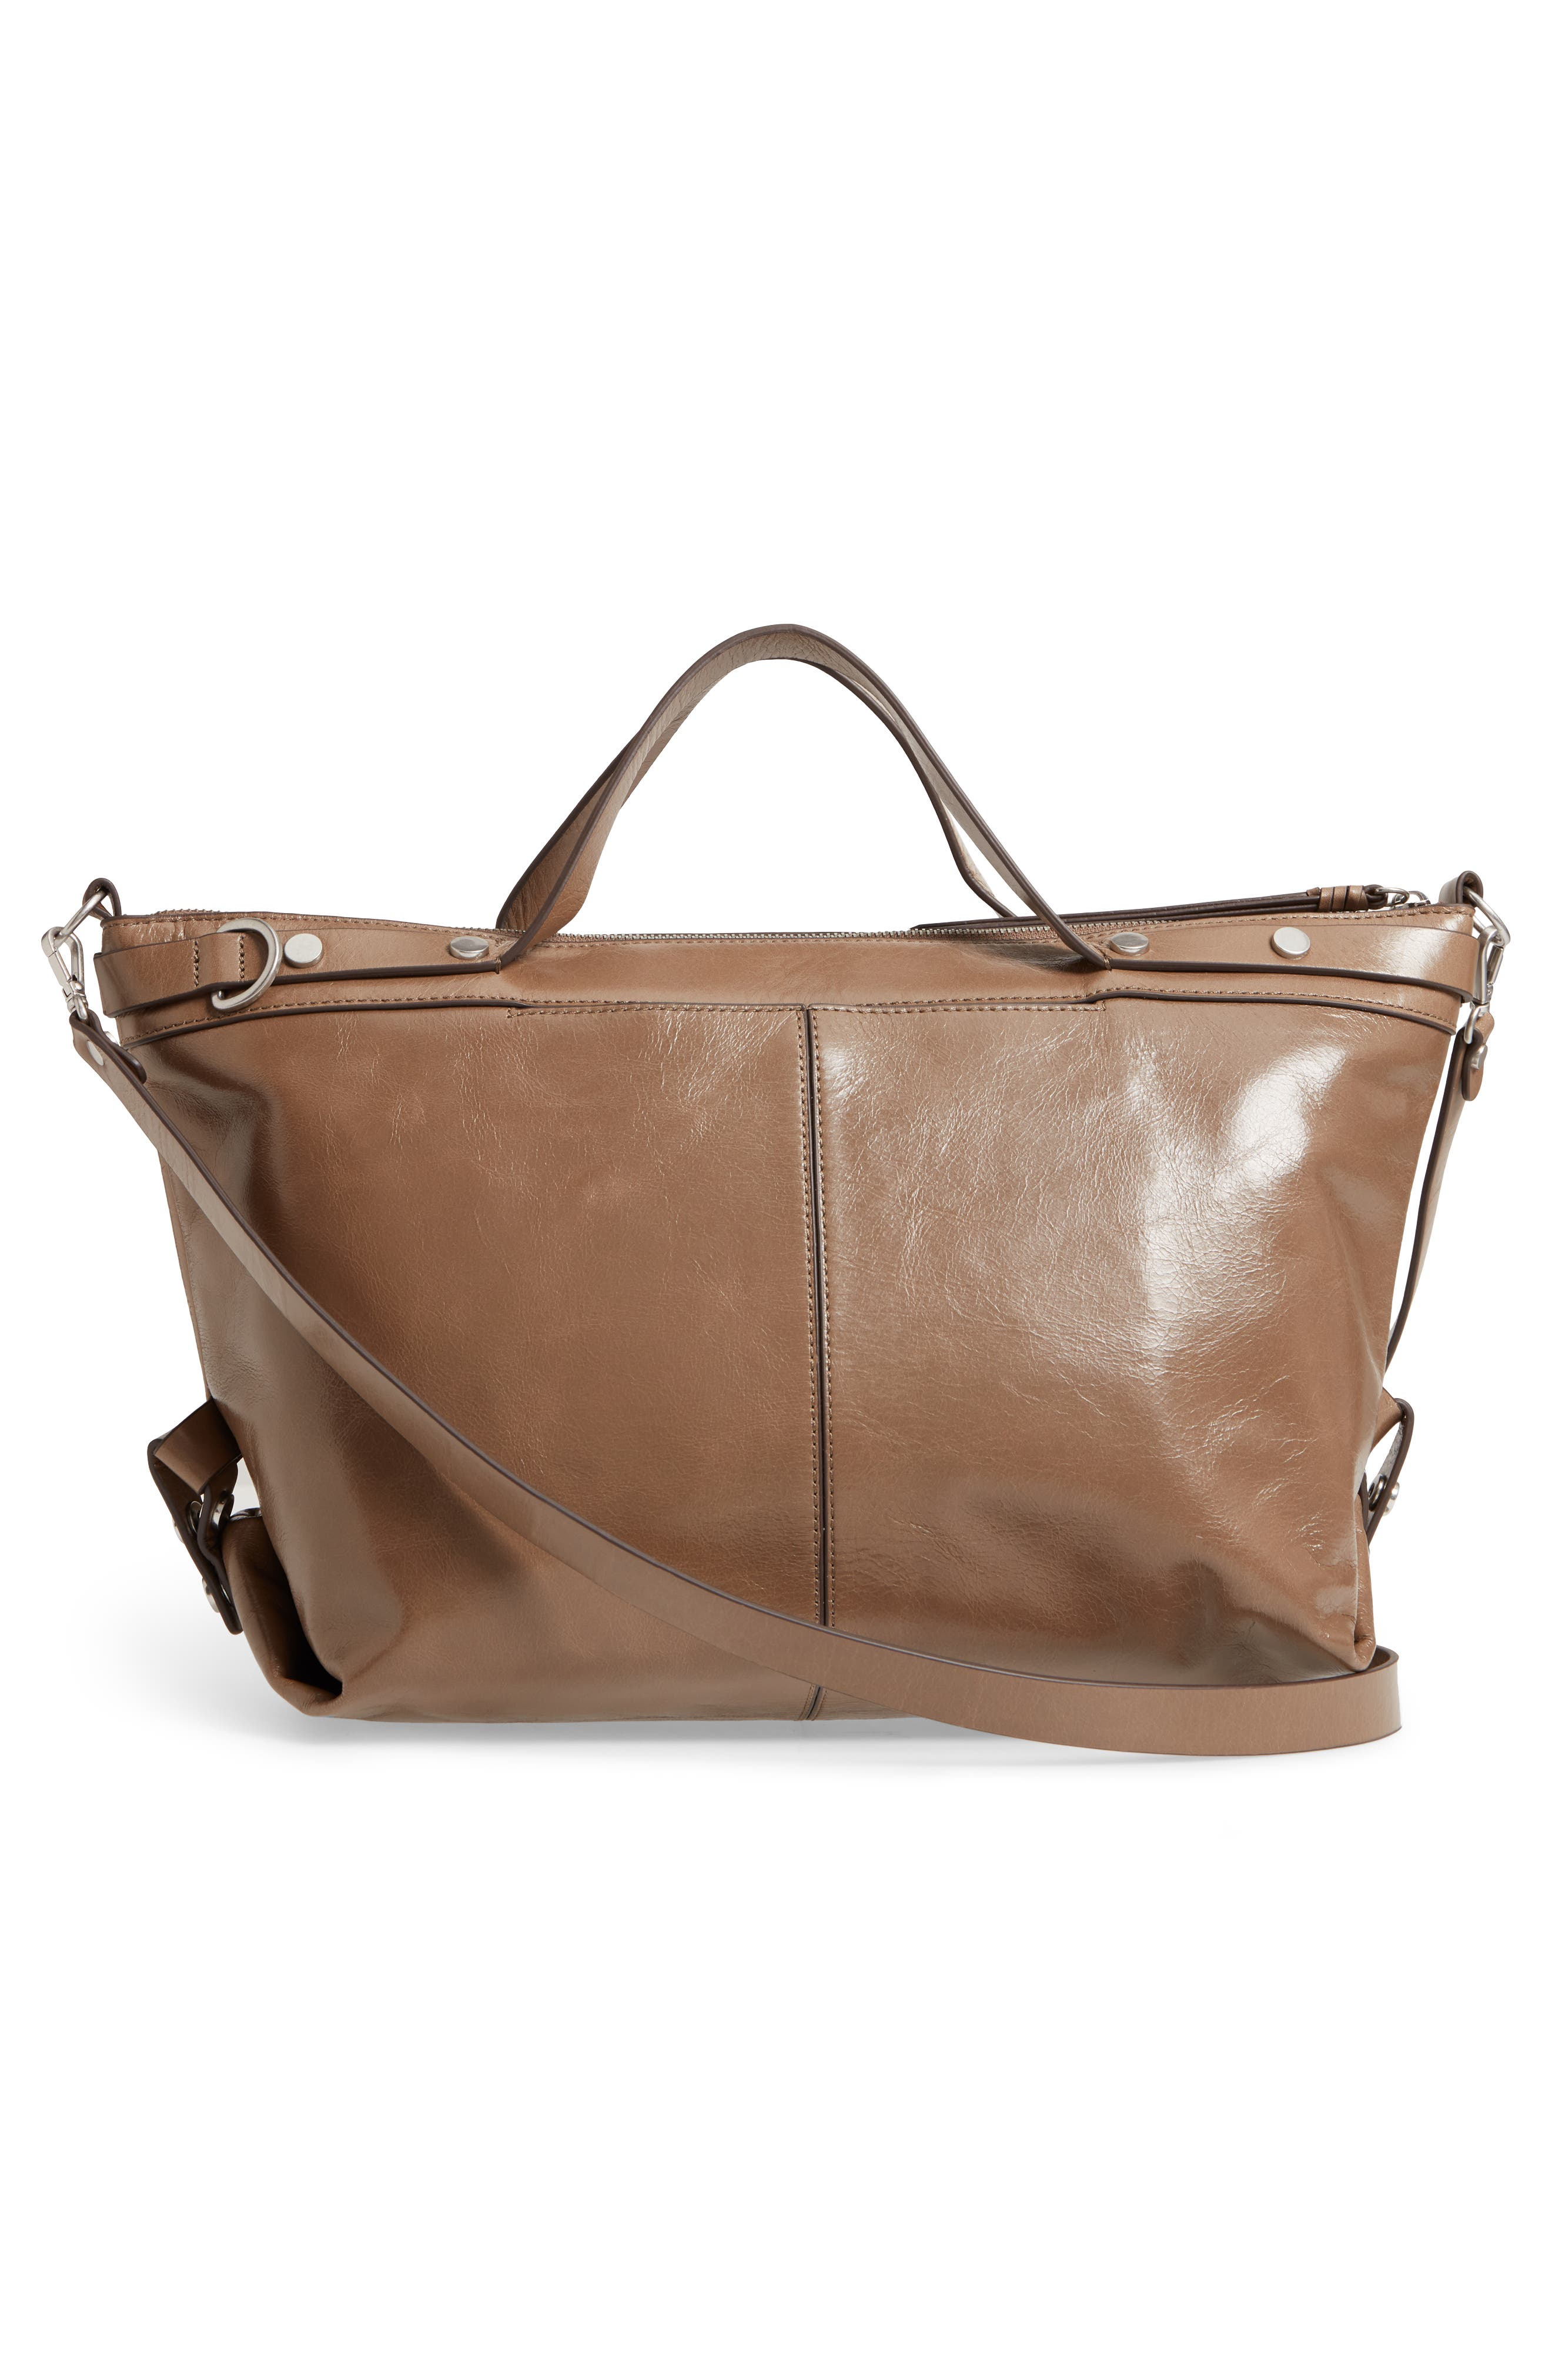 Perry Glazed Leather Convertible Satchel,                             Alternate thumbnail 3, color,                             BEIGE BISCUIT